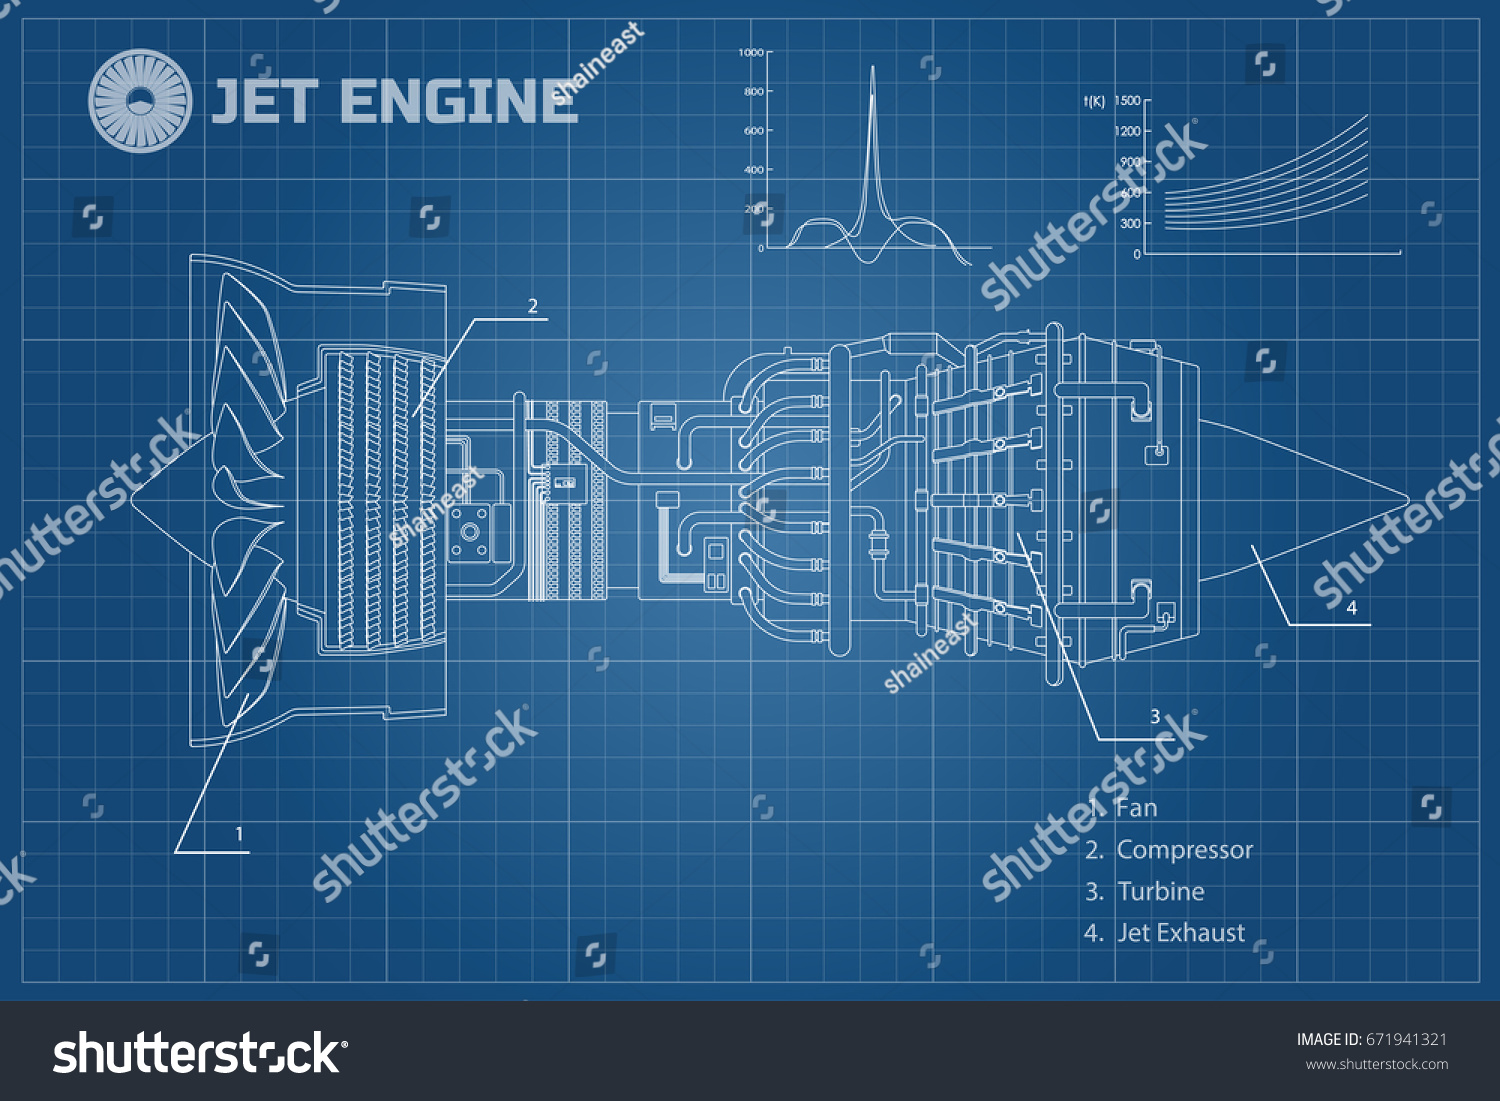 Jet engine of airplane. Outline style. Industrial aerospase blueprint. Part  of the aircraft